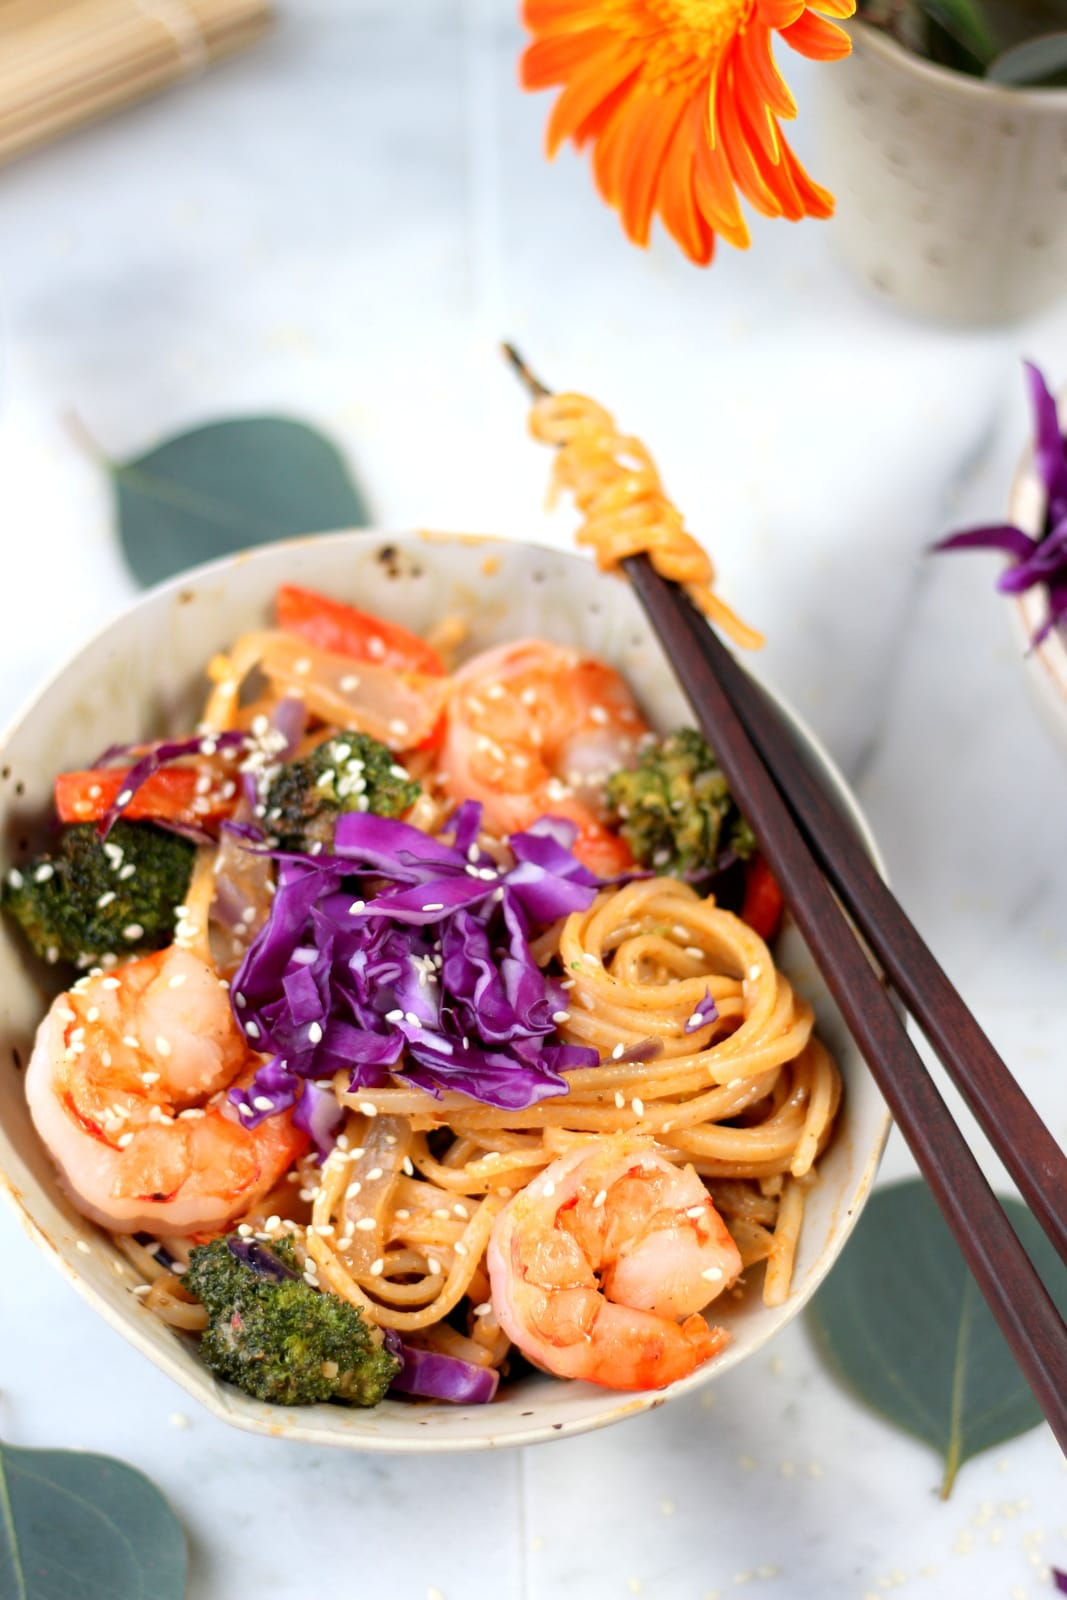 Sweet Curry Noodles + Shrimp and Roasted Vegetables - amazing Bangkok Curry recipe! thewoodenskillet.com #foodphotography #foodstyling